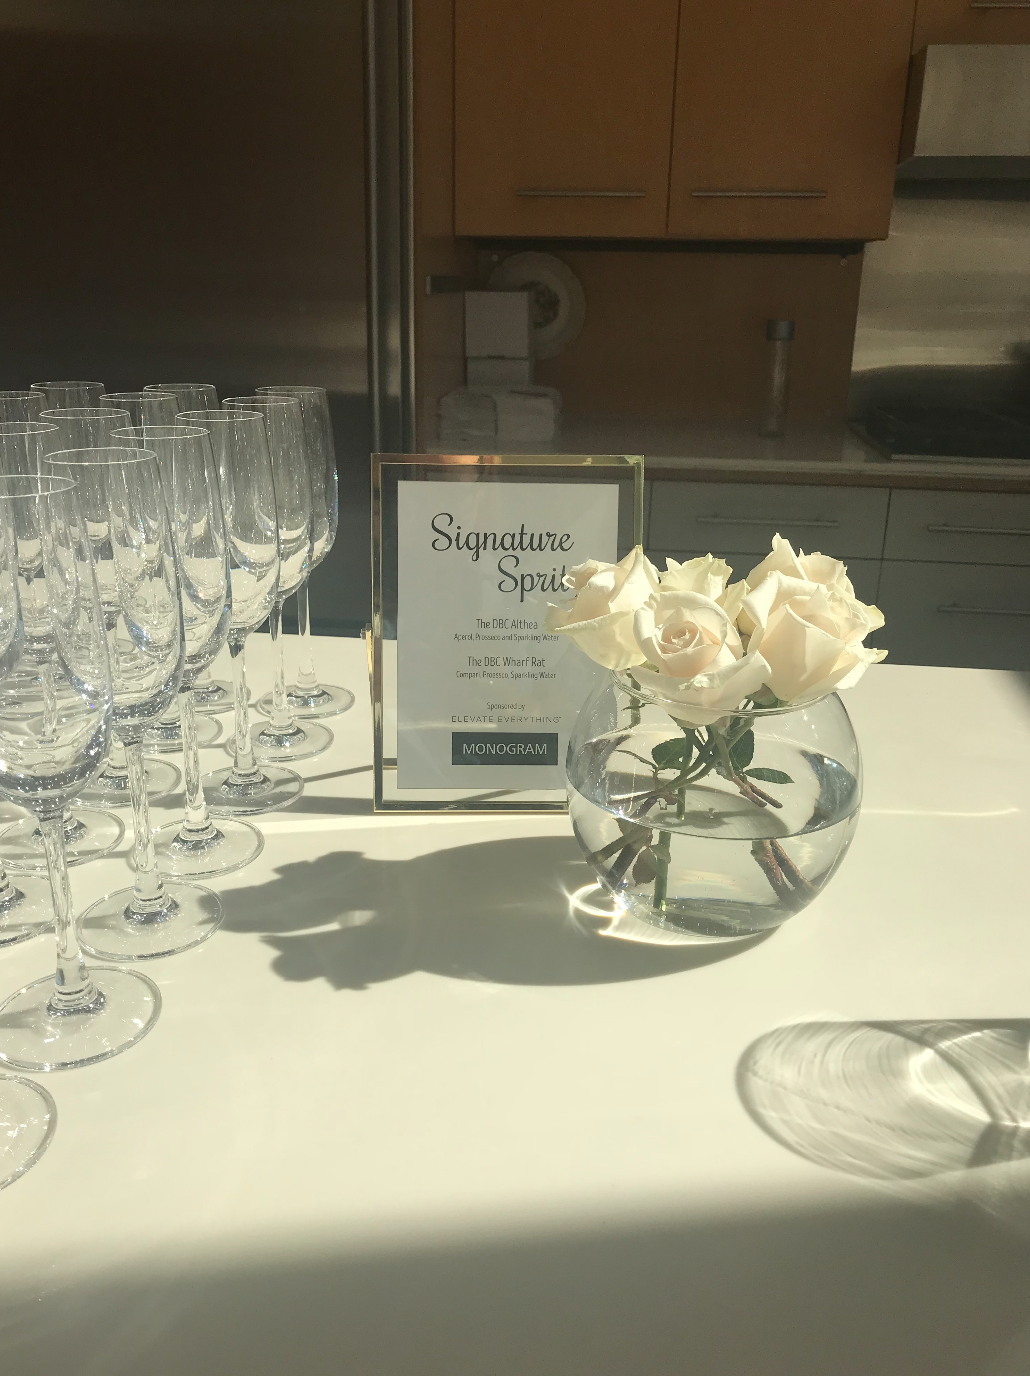 Champagne Spritzers were the drink of the night! I always recommend having one signature drink for an event that keeps things aesthetically cohesive and keeps the bar line short!